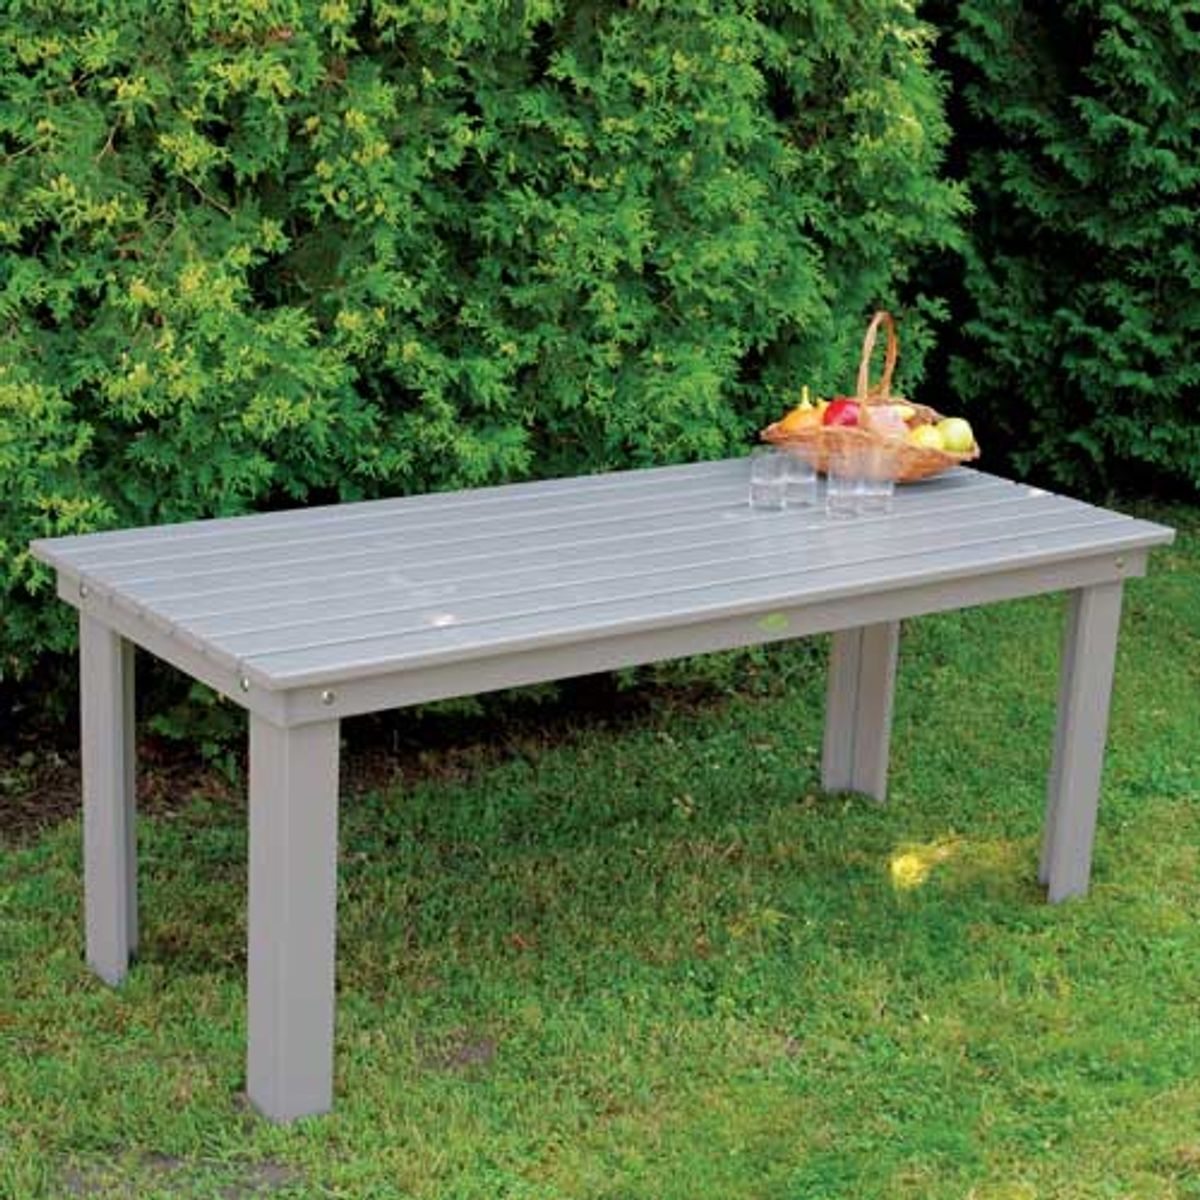 Table de jardin rectangulaire en bois de pin gris Farm Folklore